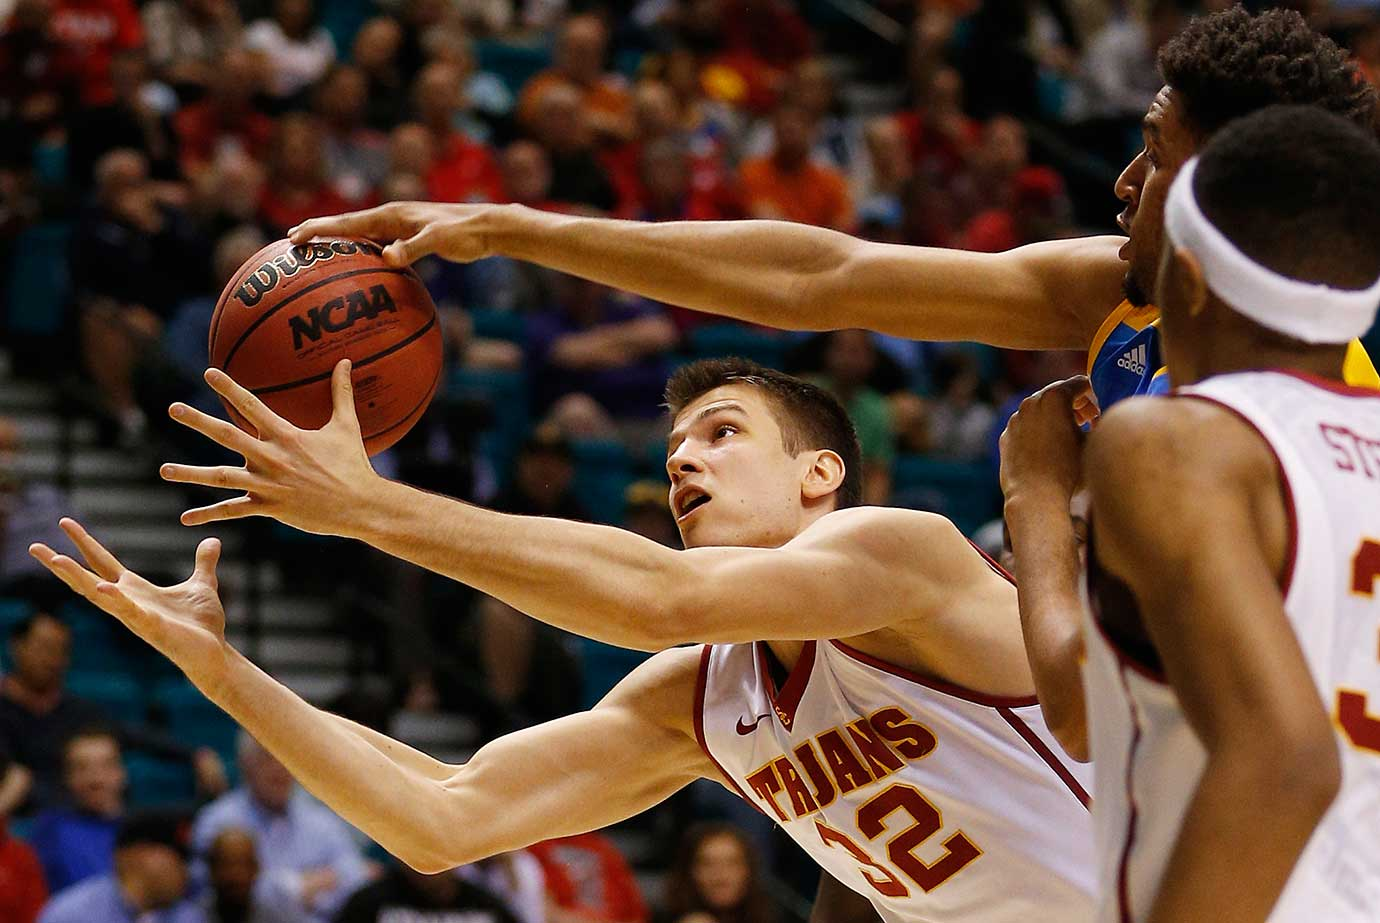 USC forward Nikola Jovanovic reaches for the ball against UCLA in Las Vegas.